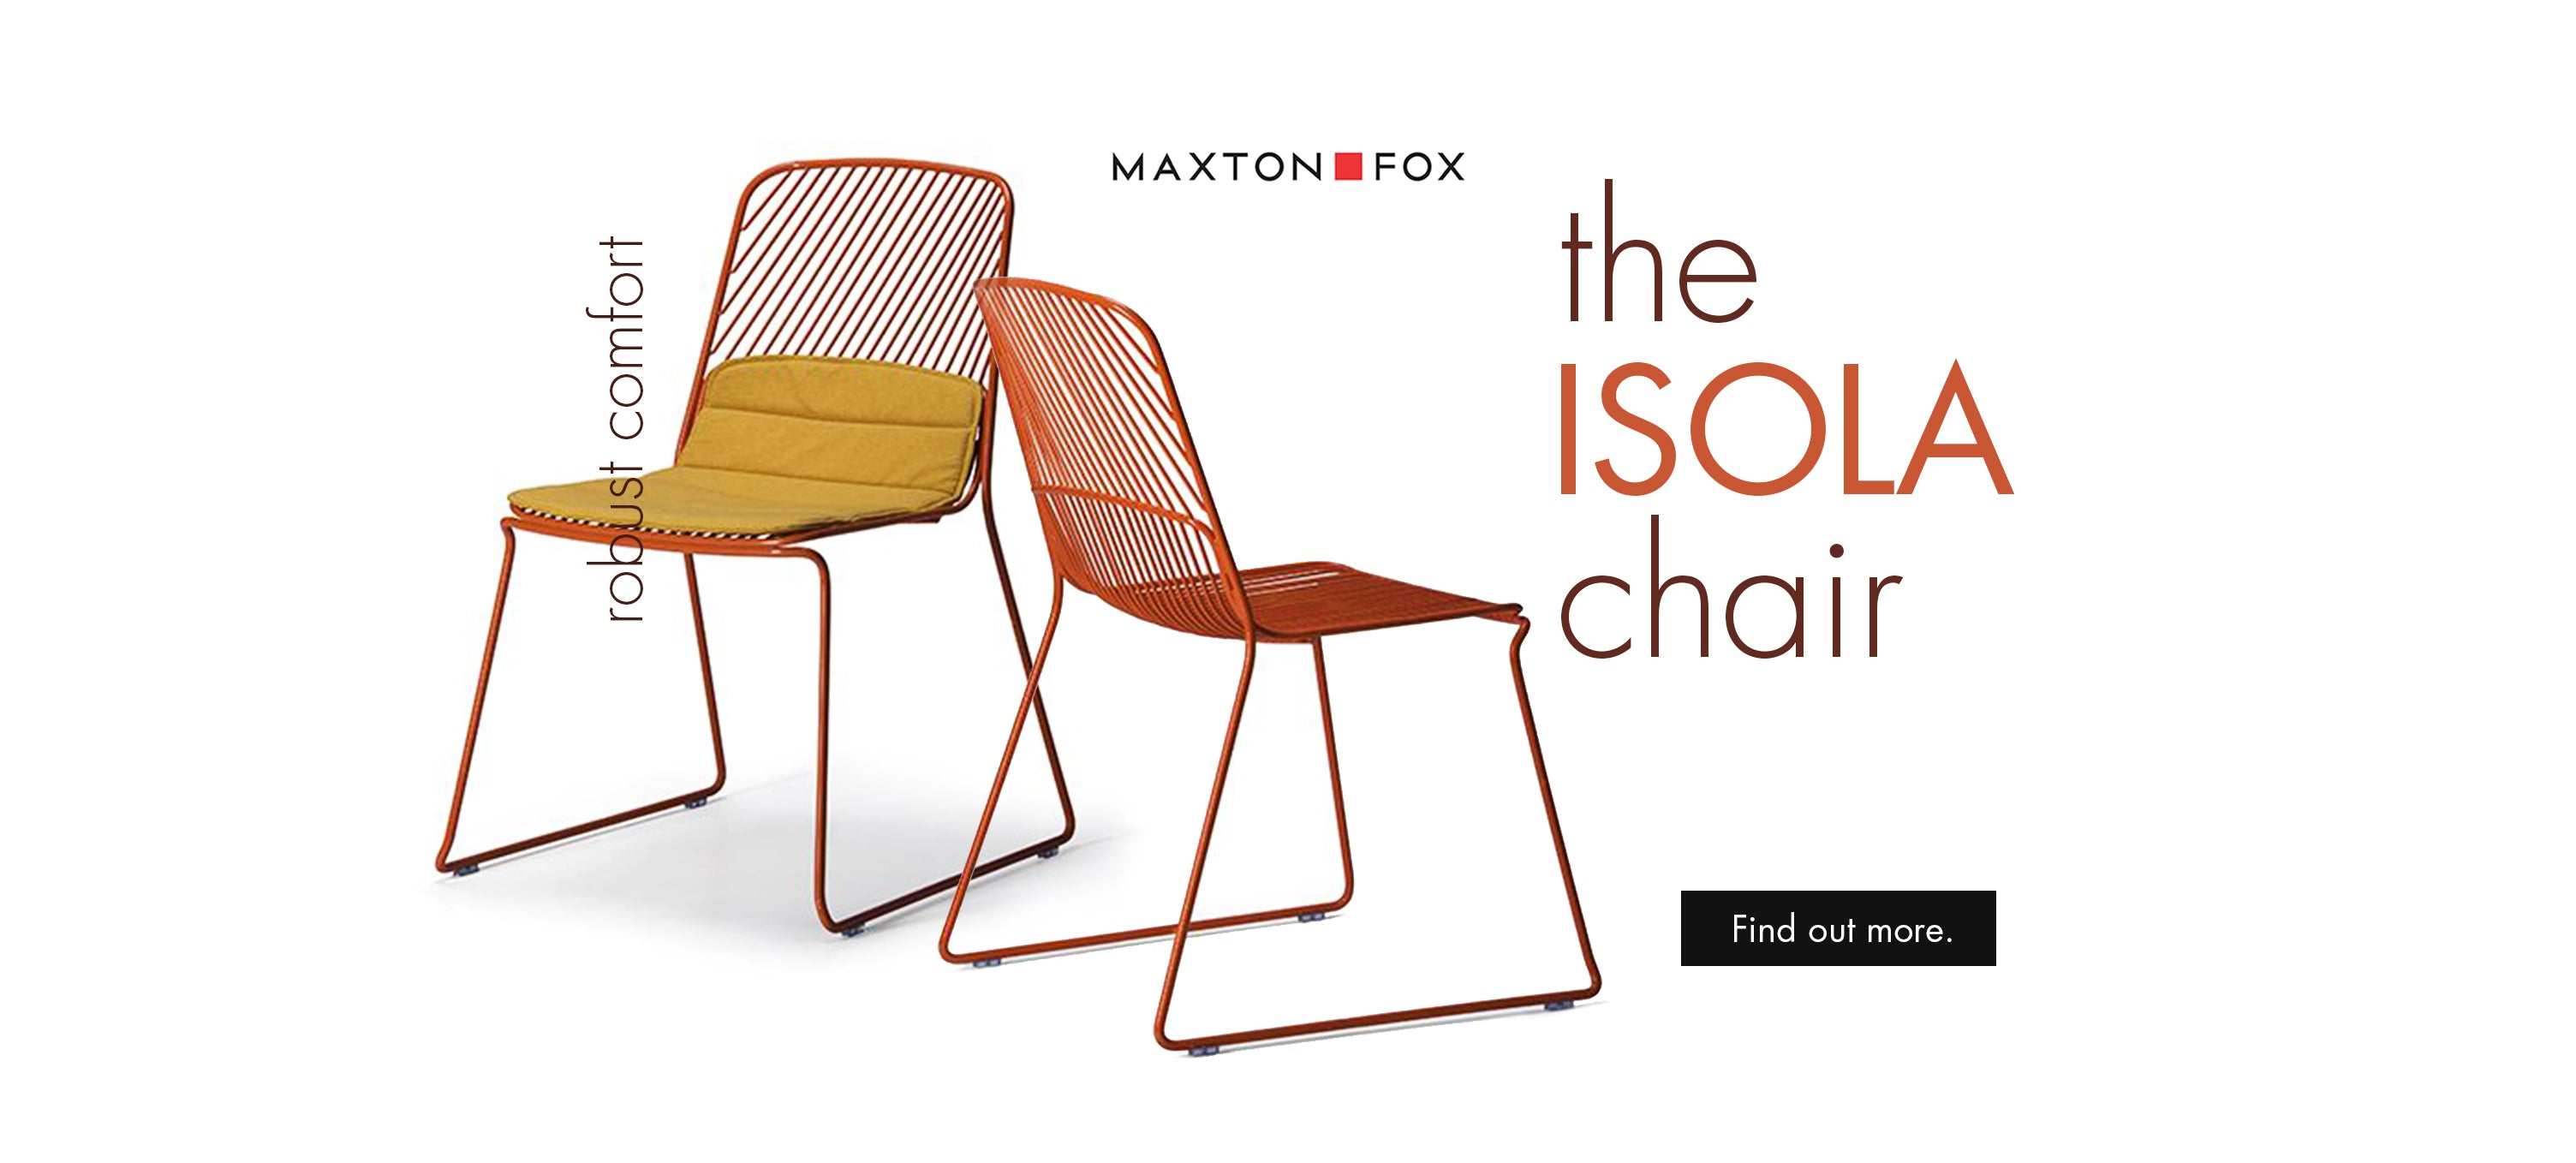 Maxton Fox The Isola Chair Image 2